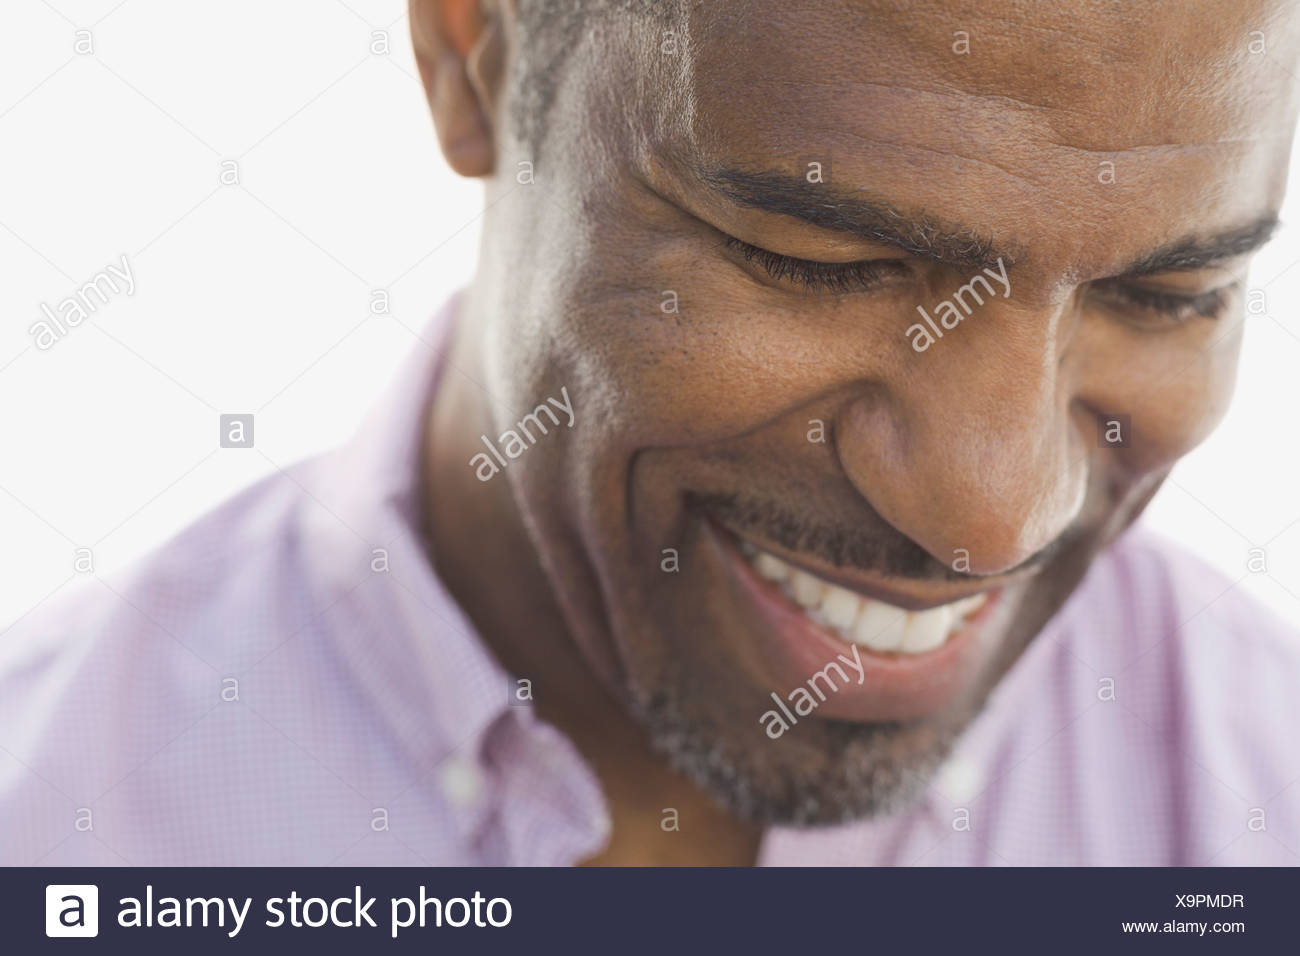 Close-up of smiling man - Stock Image